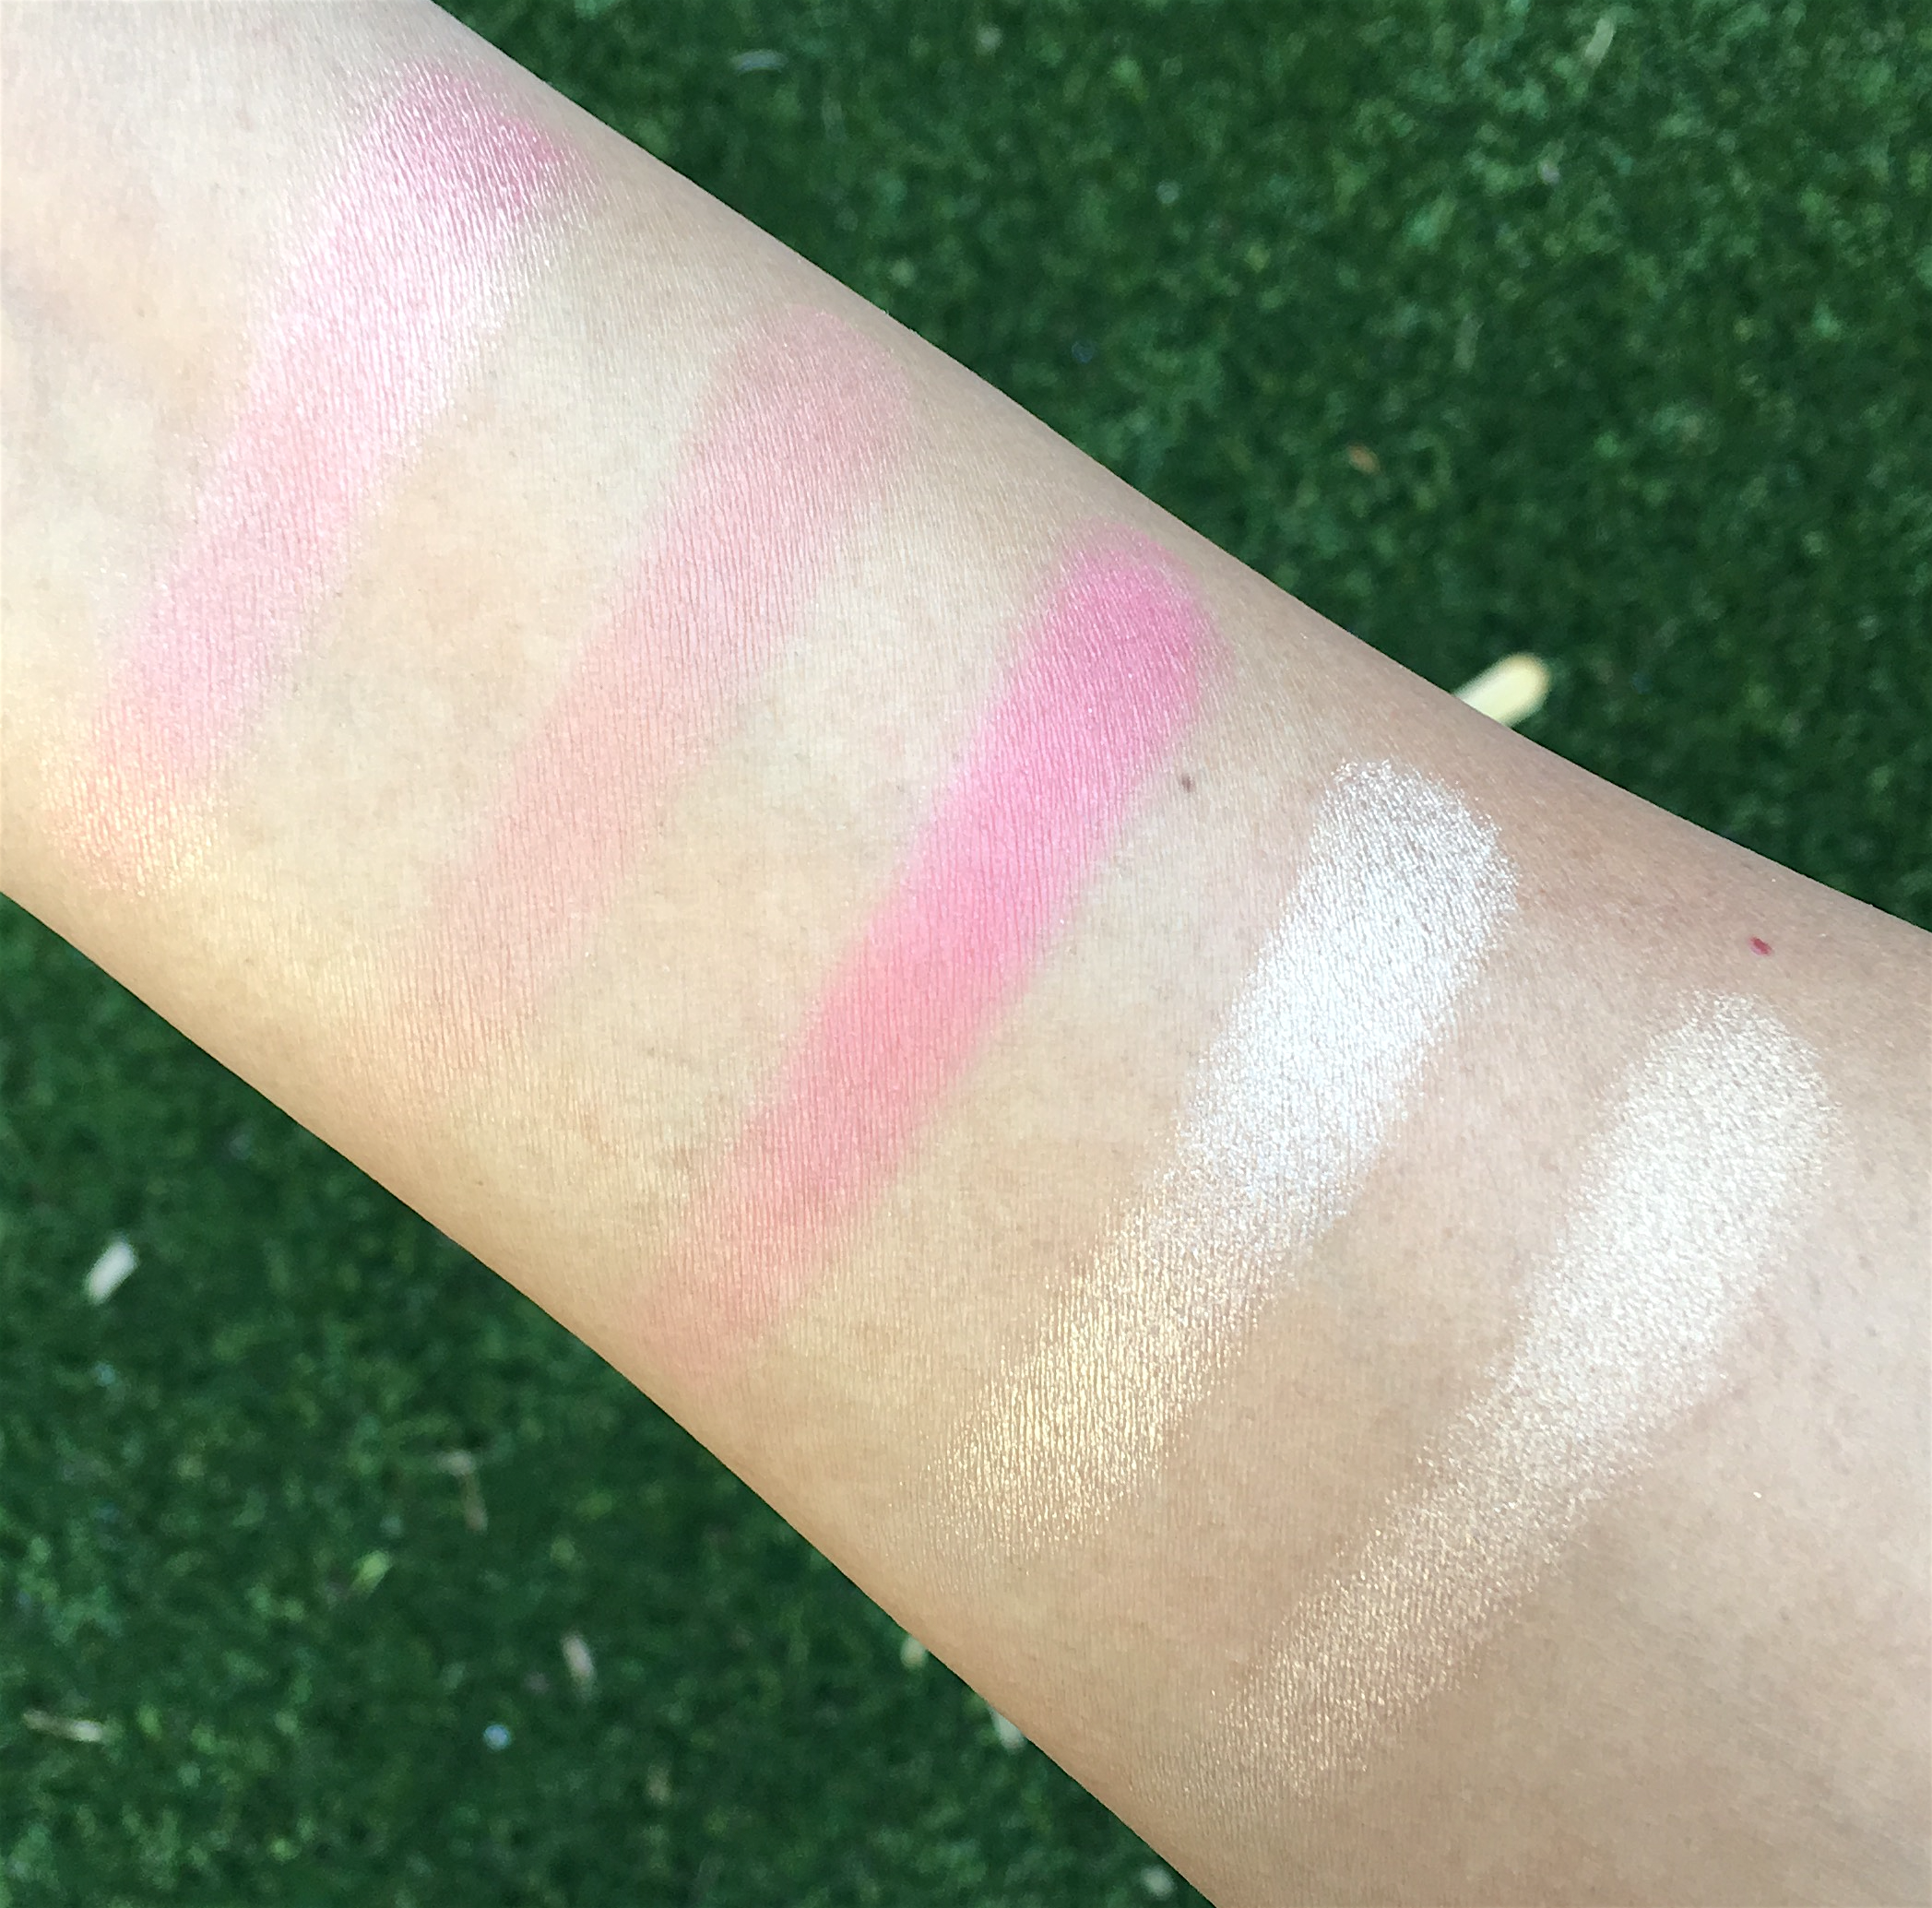 Becca x Jaclyn Hill Face Palette, swatches taken in indirect sunlight